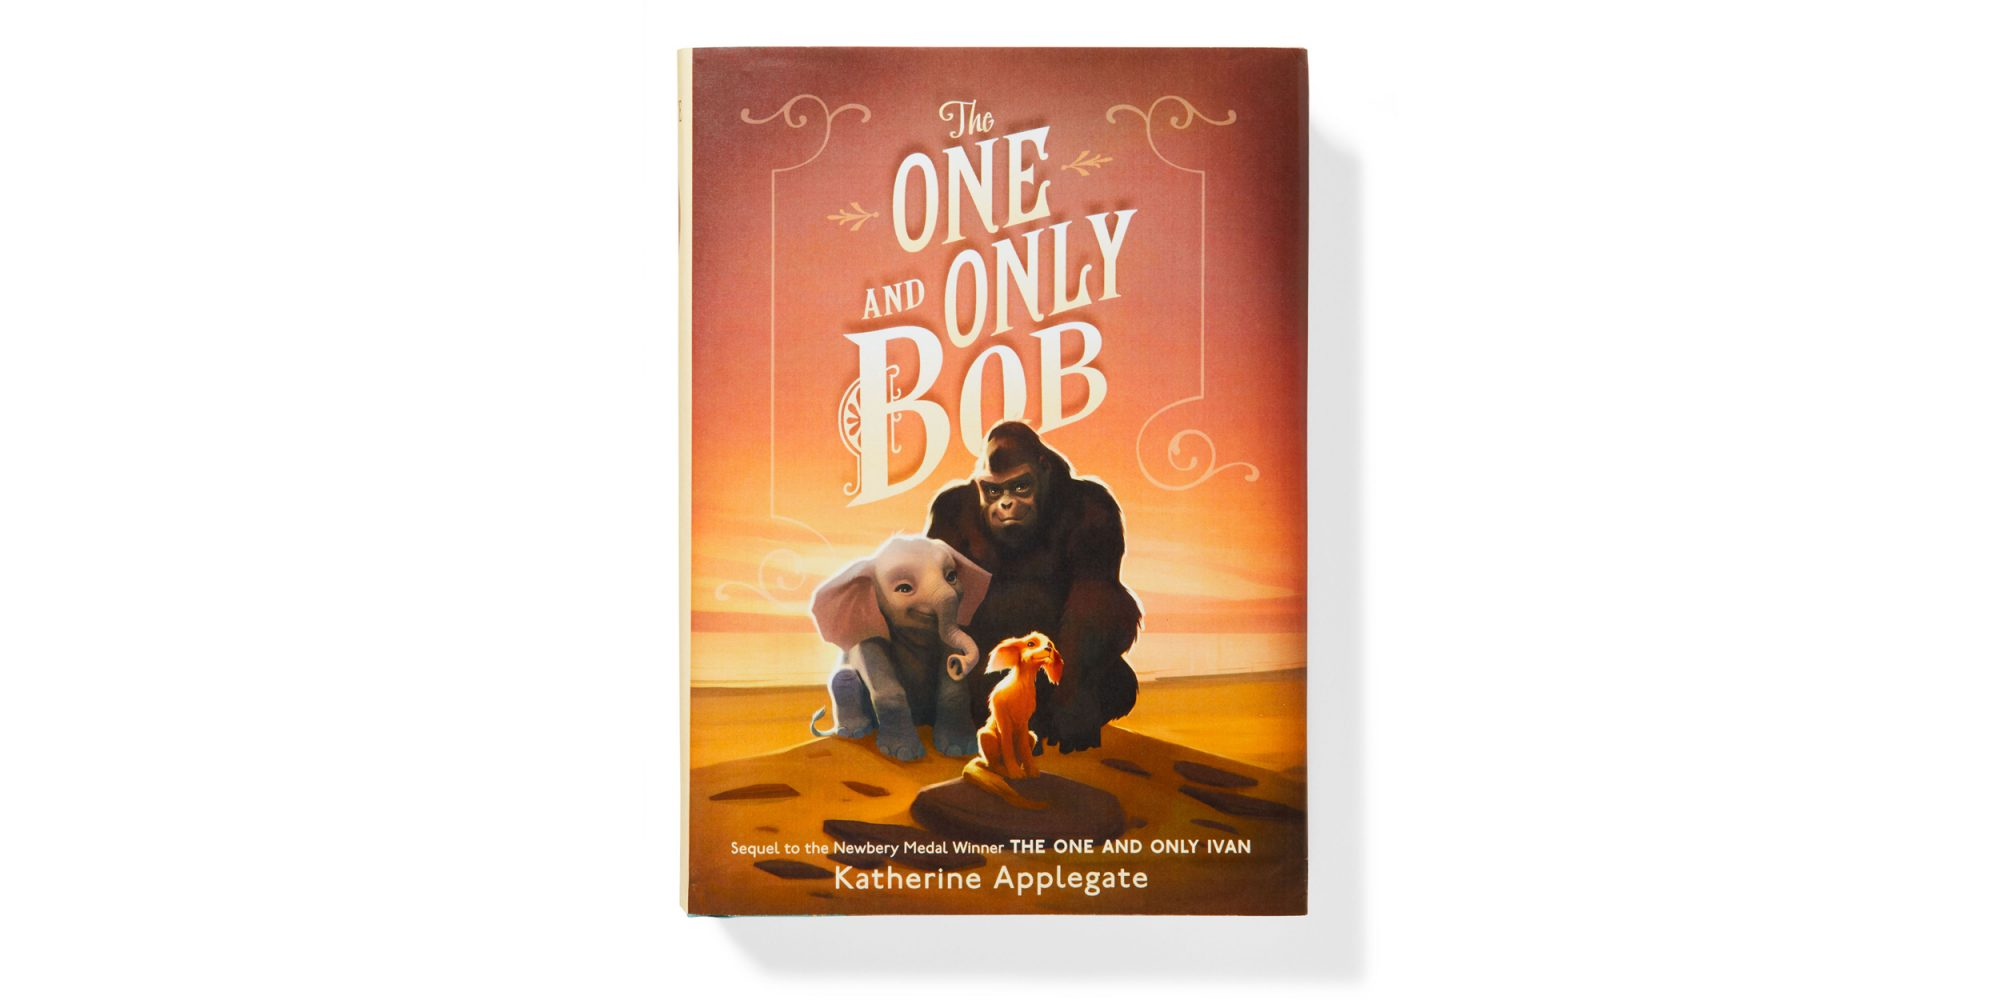 The One and Only Bob book cover